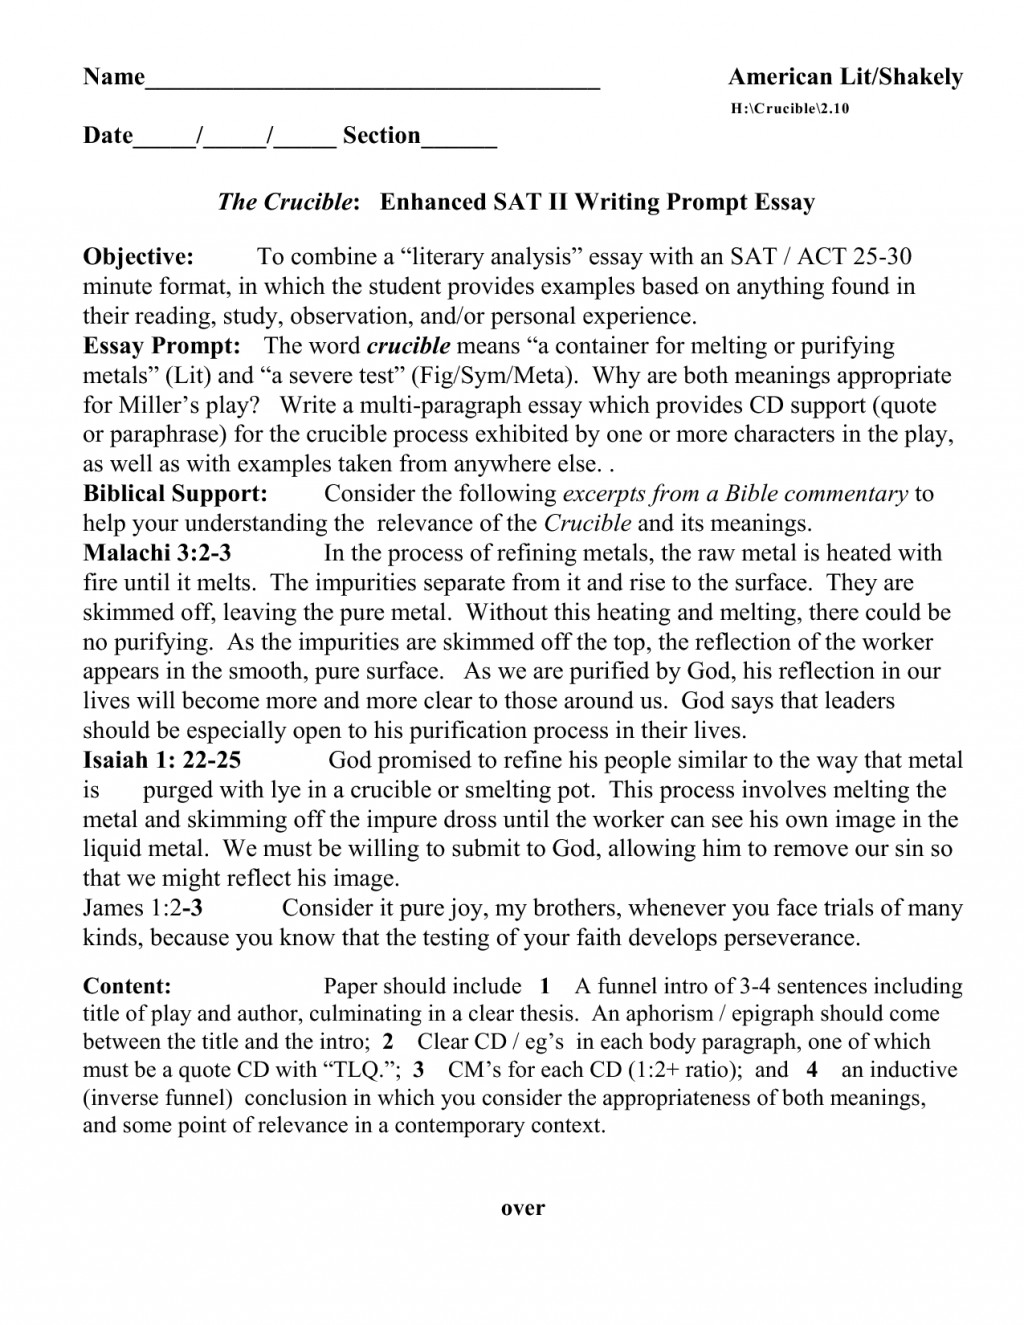 020 Sat Essay Example Essays Examples New Rare Prompts 2016 Average Score For Ivy League Large